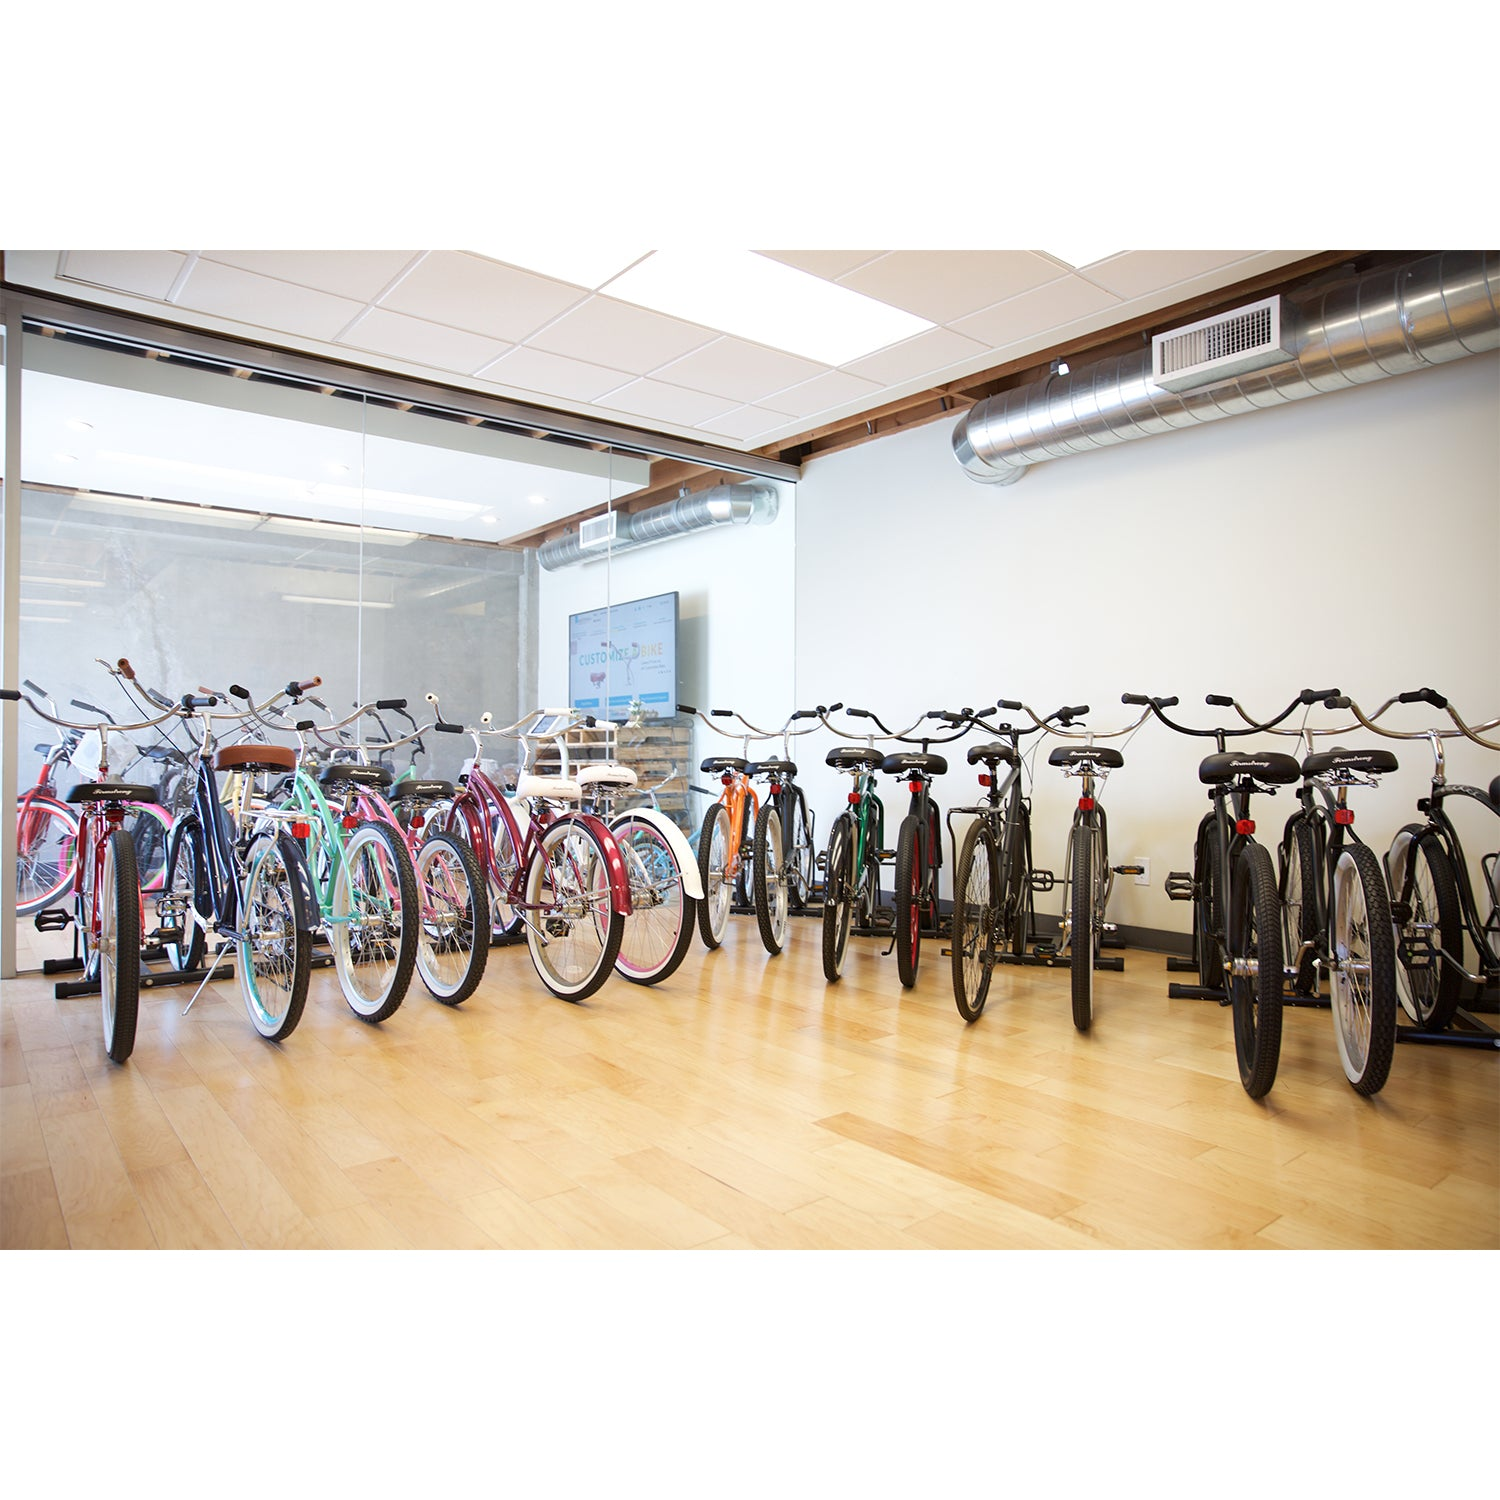 Why You Should Shop At Beach Bikes